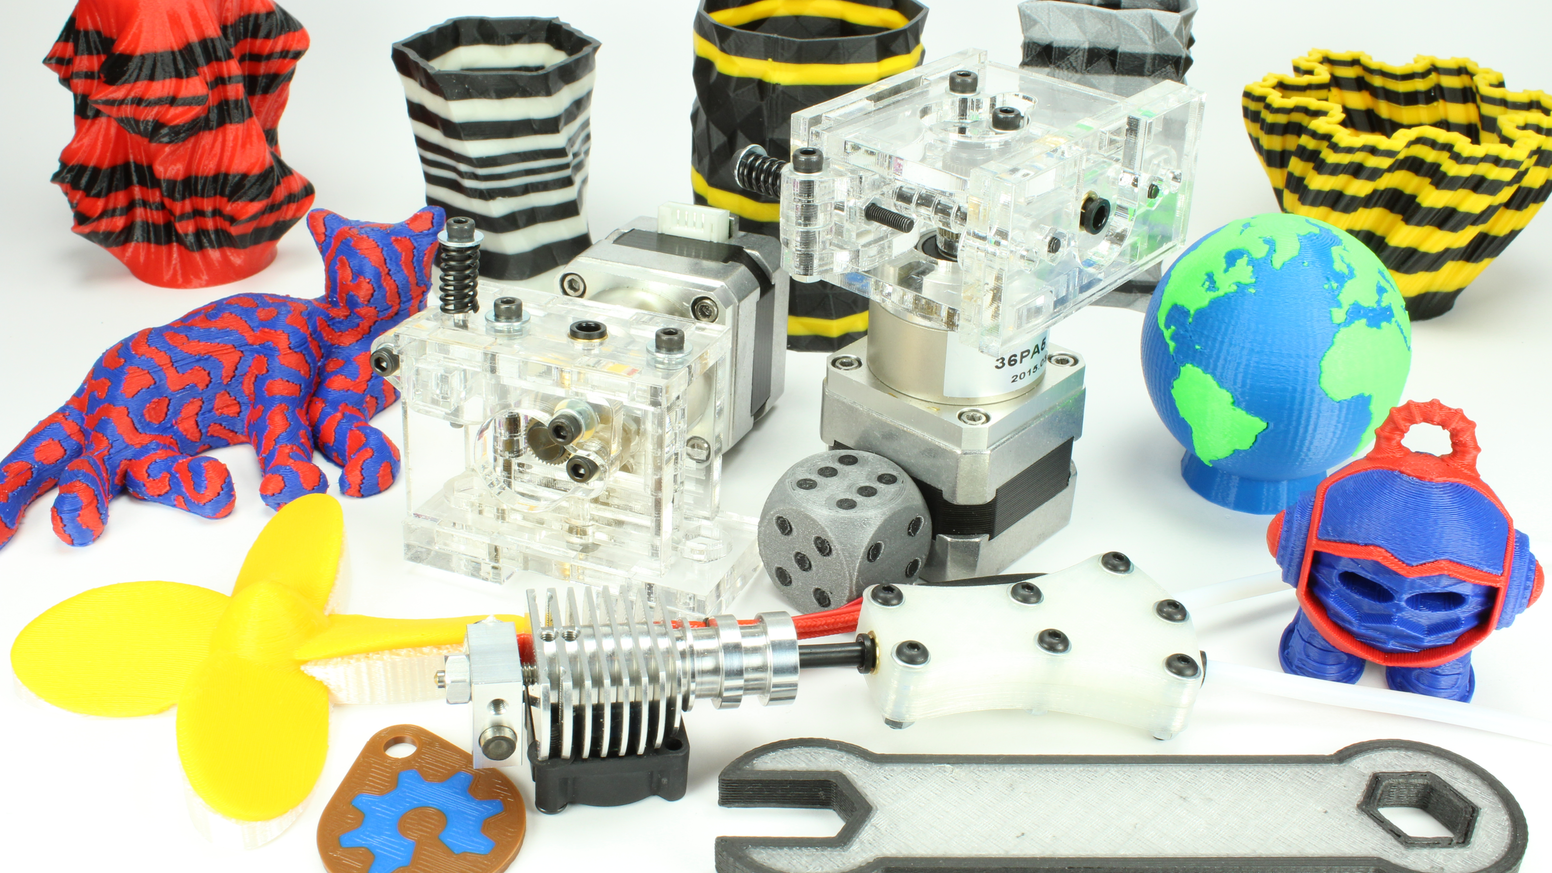 Upgrade your 3D printer to produce vibrant multi-color objects, print with support material, and create unique multi-material prints!